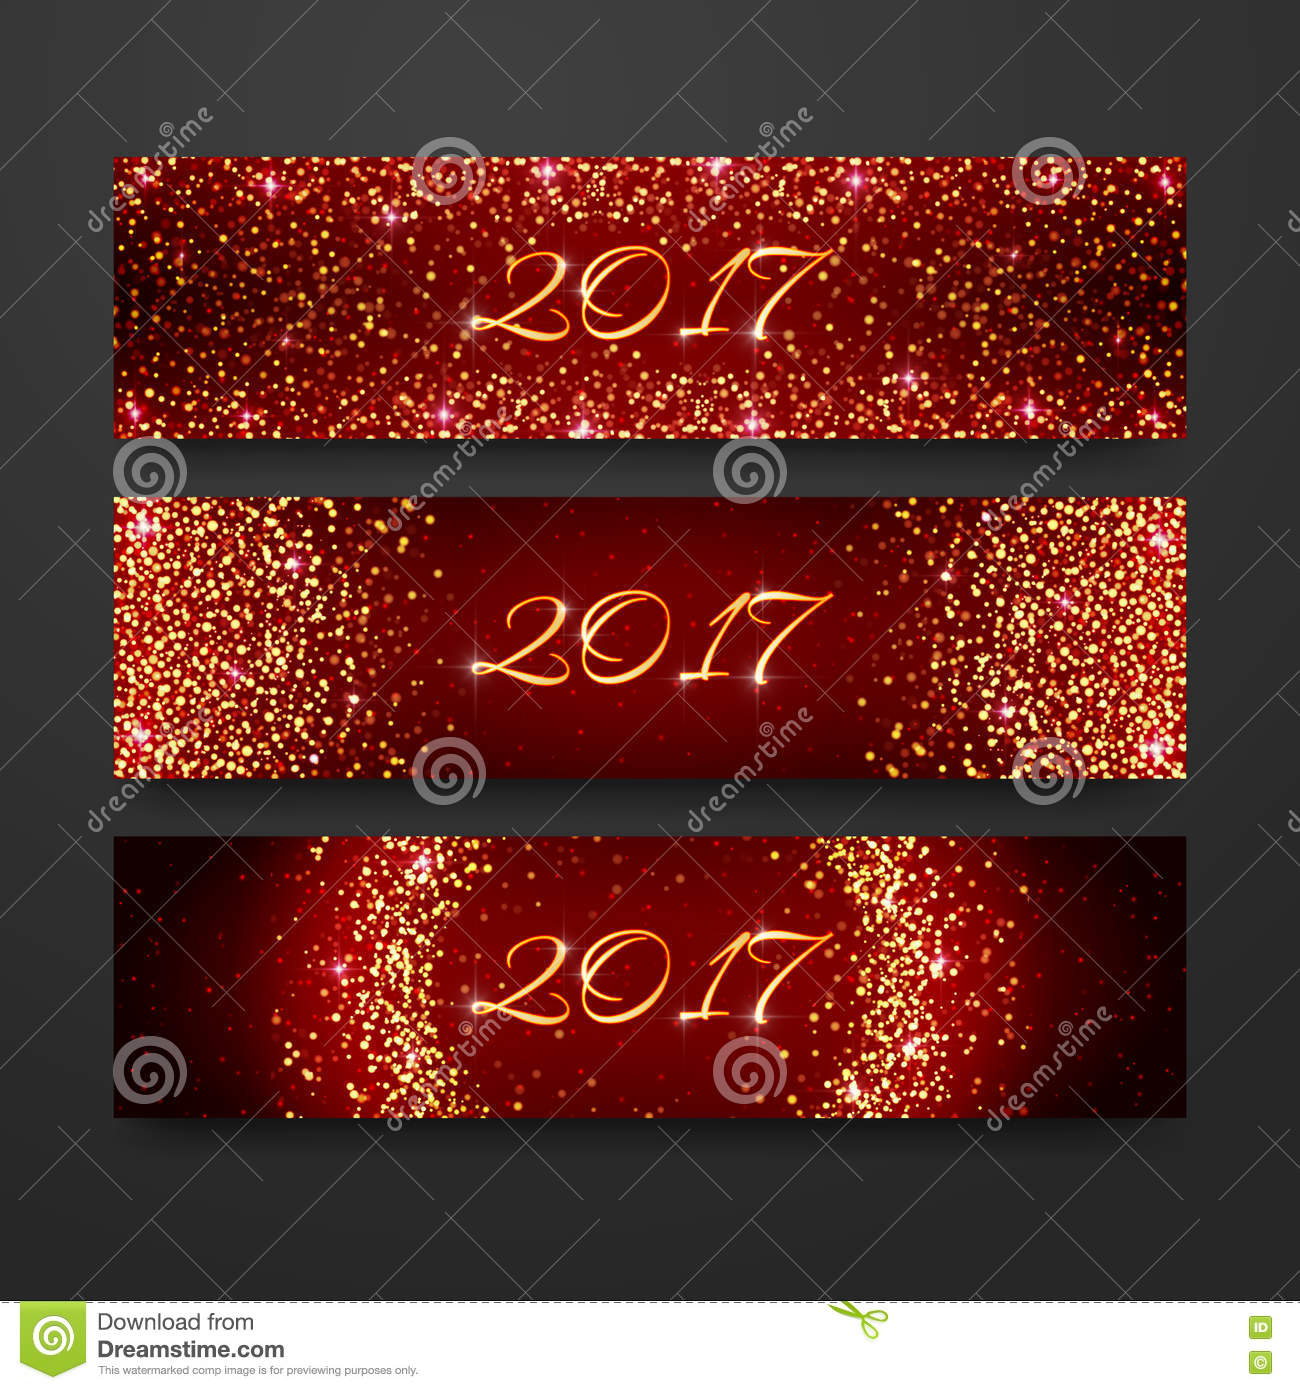 happy new year 2017 invitation design collection headline holiday template with sparkles on red background